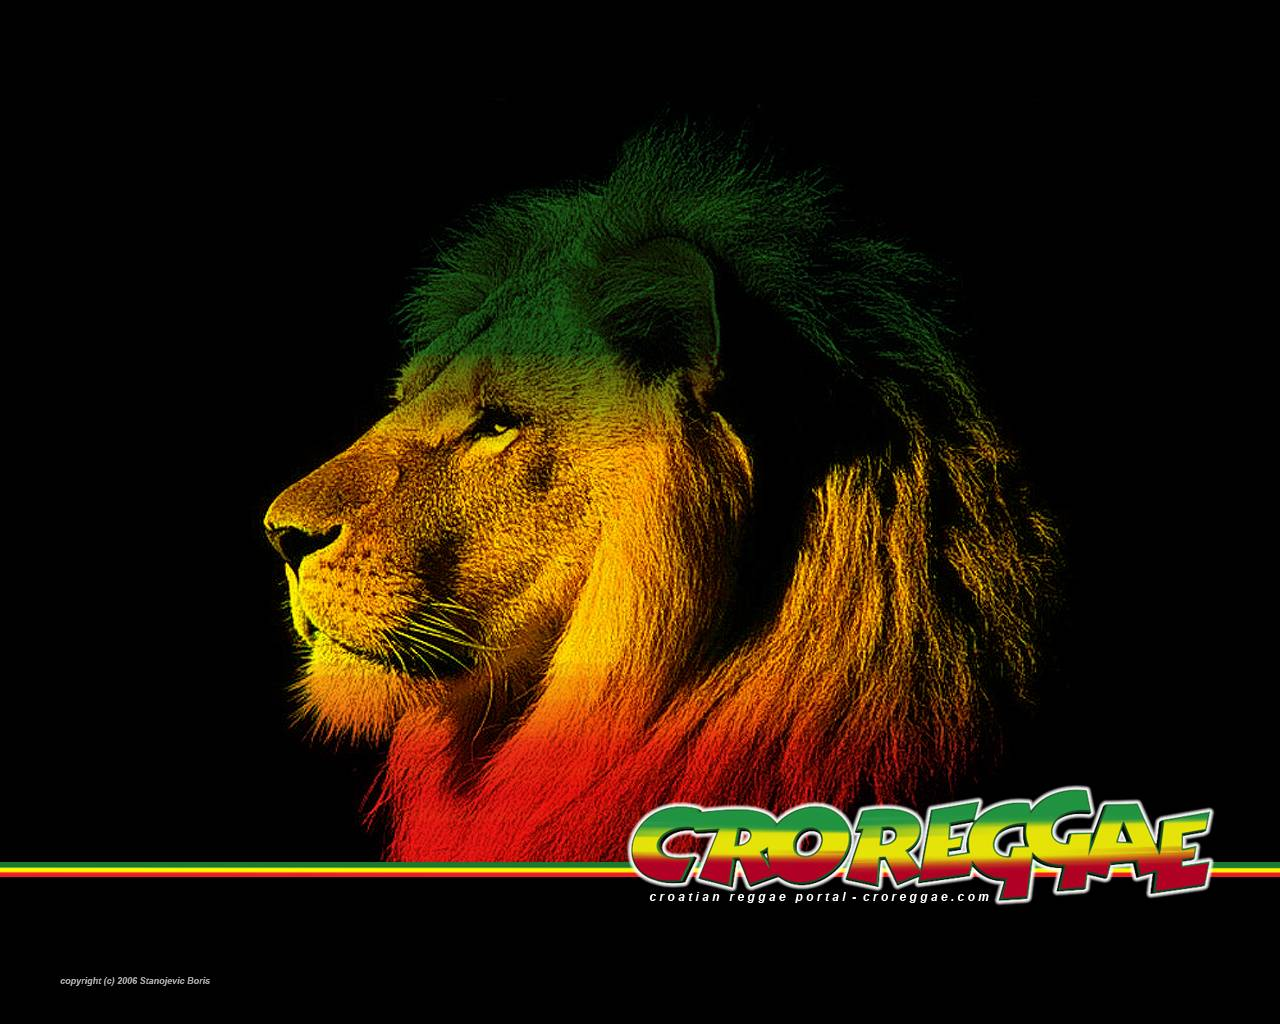 Wallpaper iphone rasta - Wallpapers For Rasta Smoke Lion Wallpaper